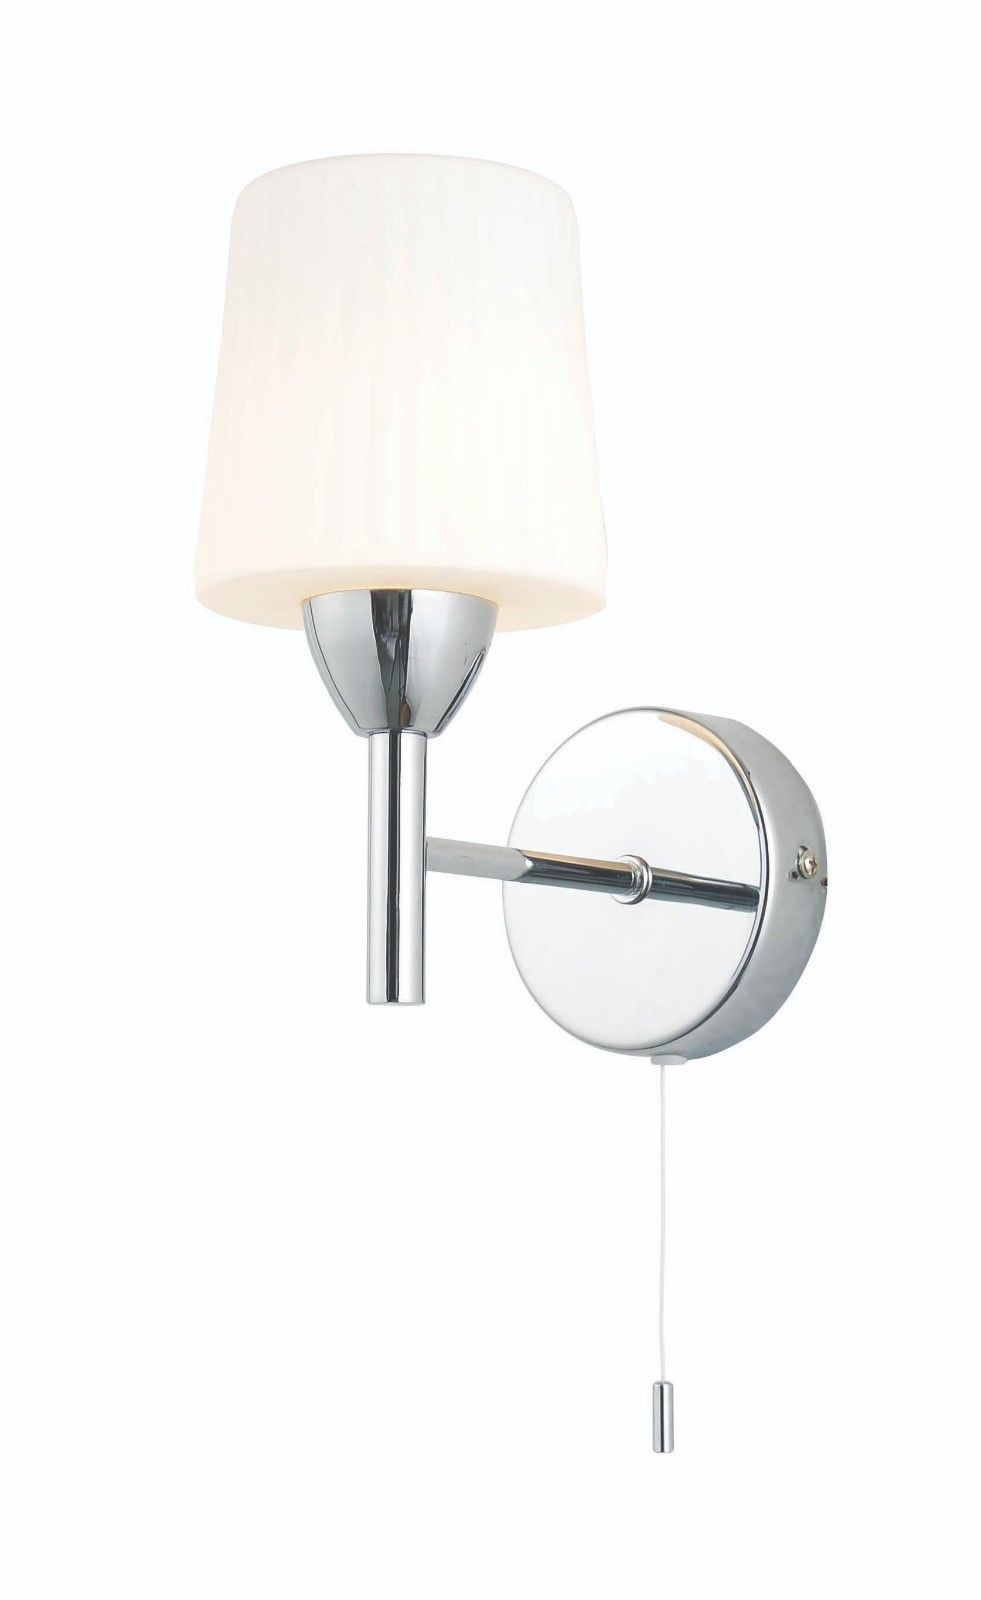 Forum Spa Aquarius Chrome 1 Light Wall Light